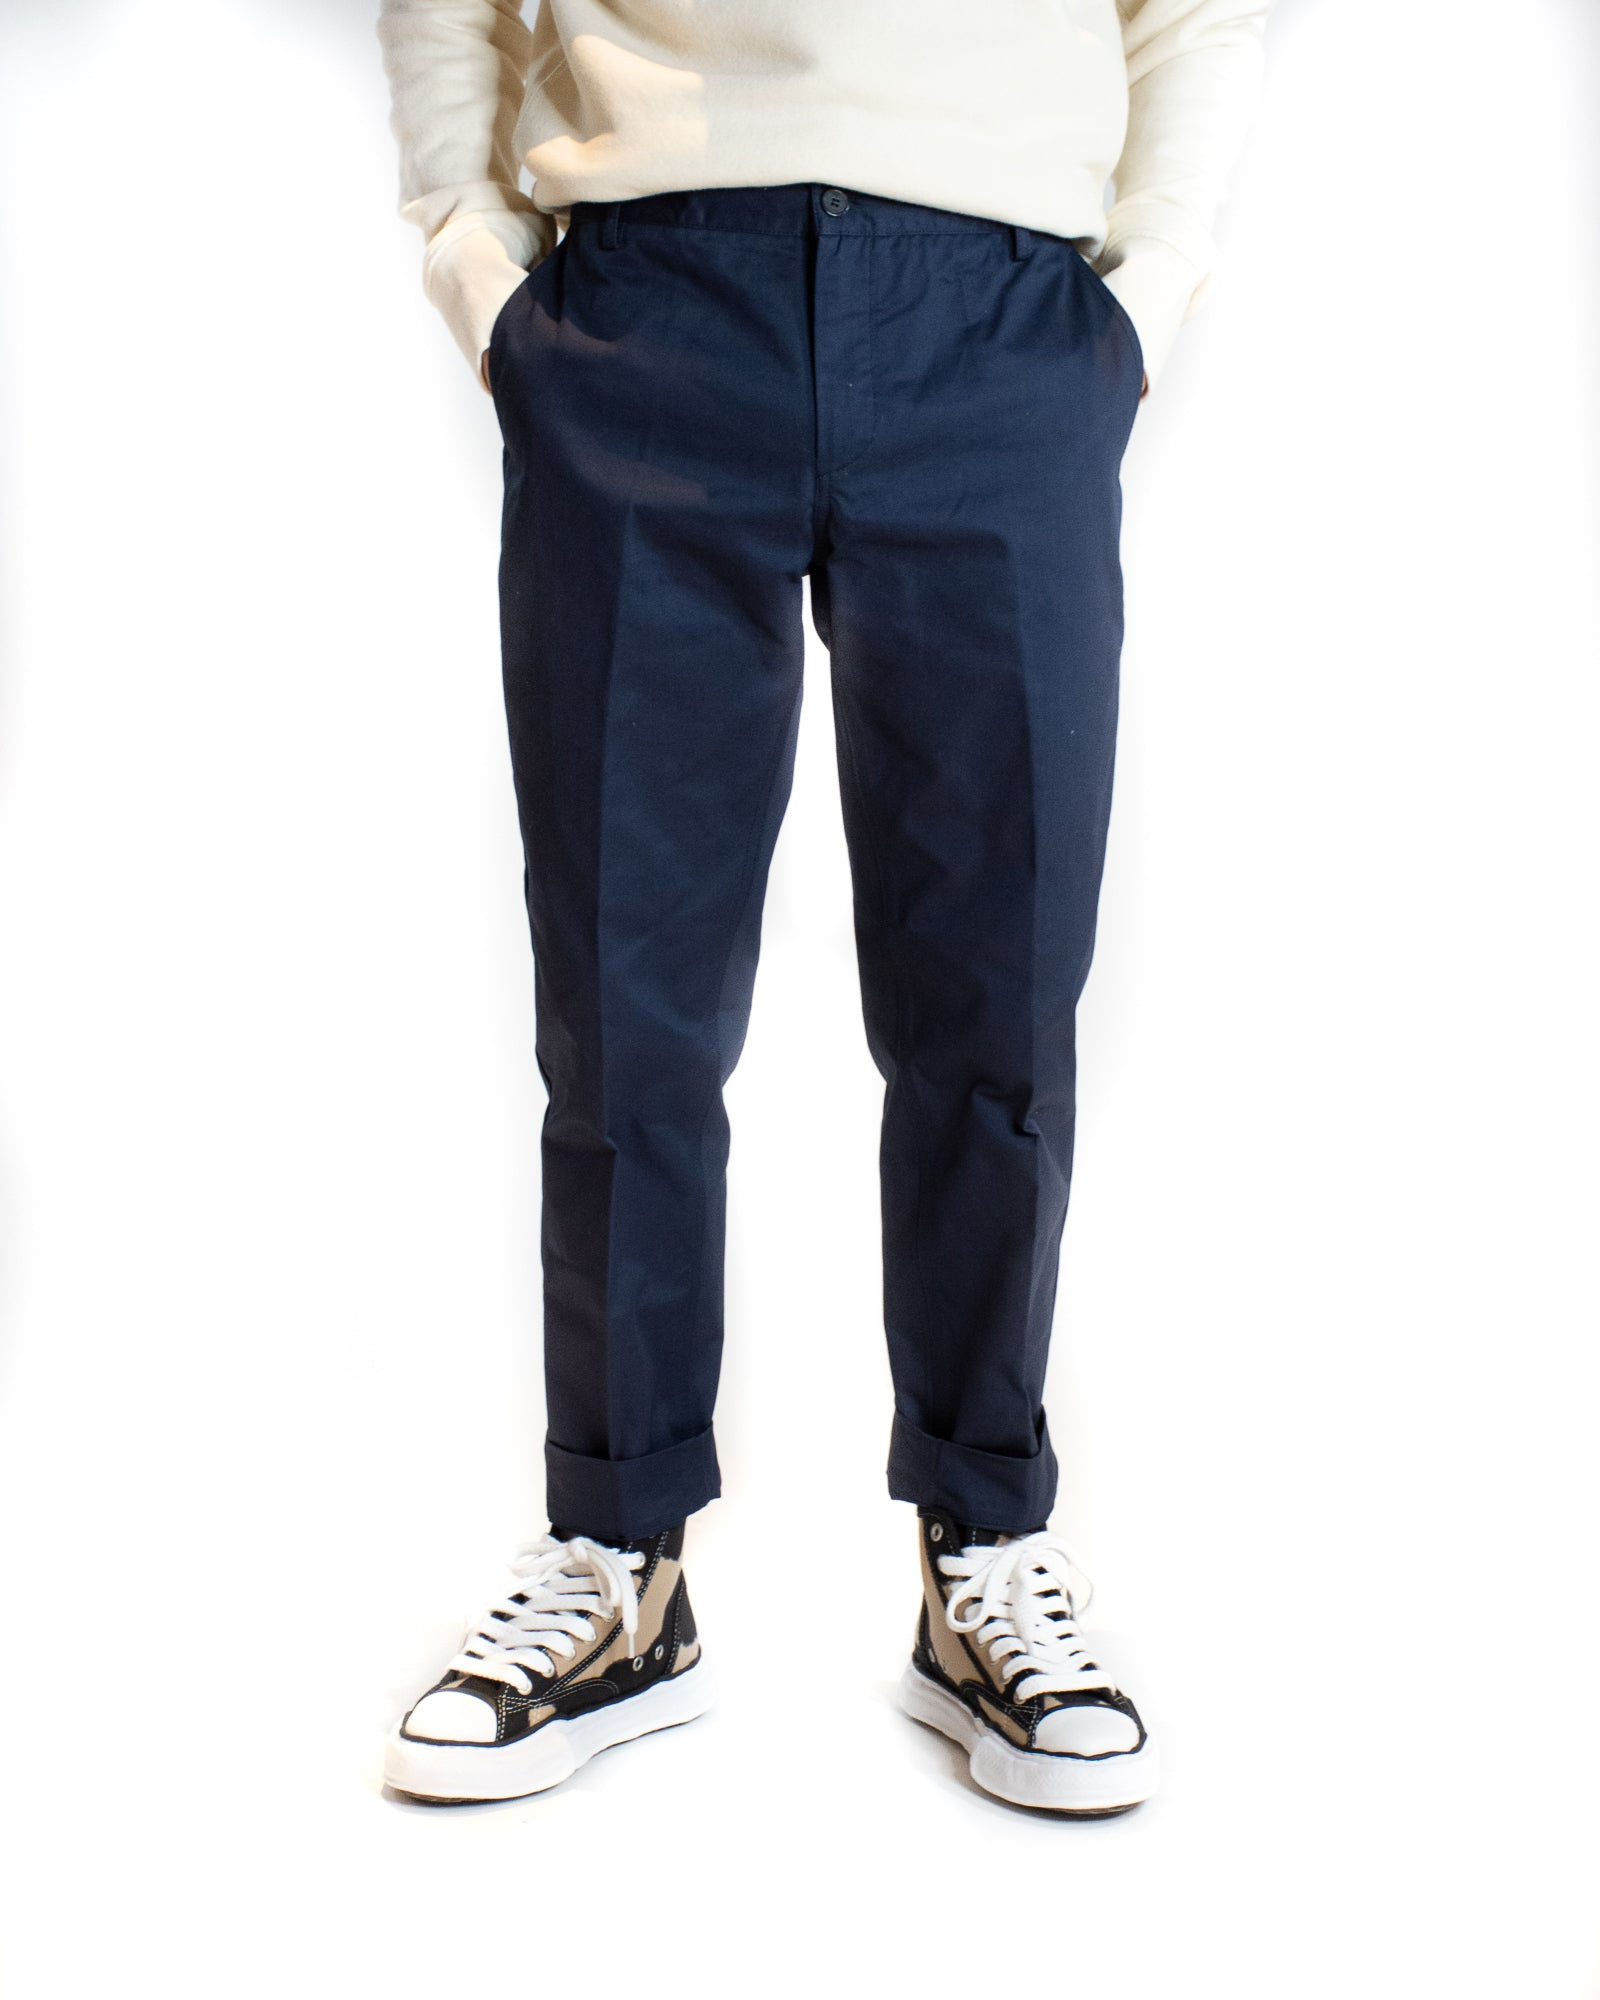 MAISON KITSUNÉ CARROT FIT TROUSER